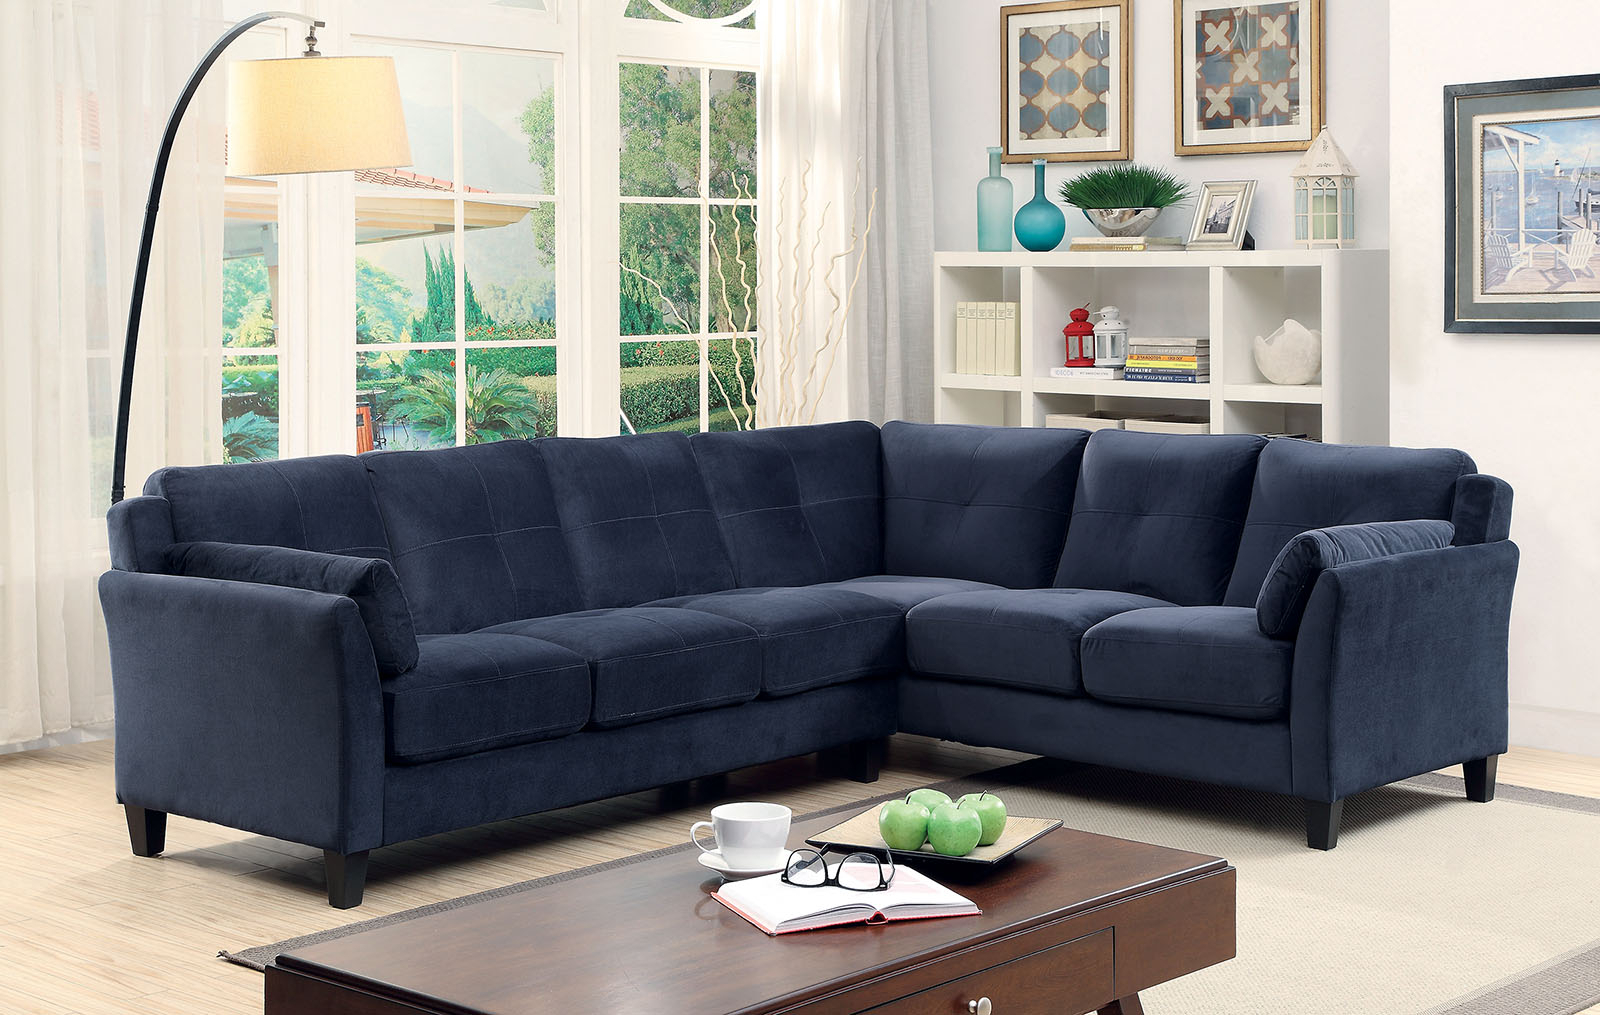 Paul Modular Sectional Sofas Blue In 2018 6368nv Nvay Blue Contemporary Sectional Sofa Furniture Of (View 3 of 20)